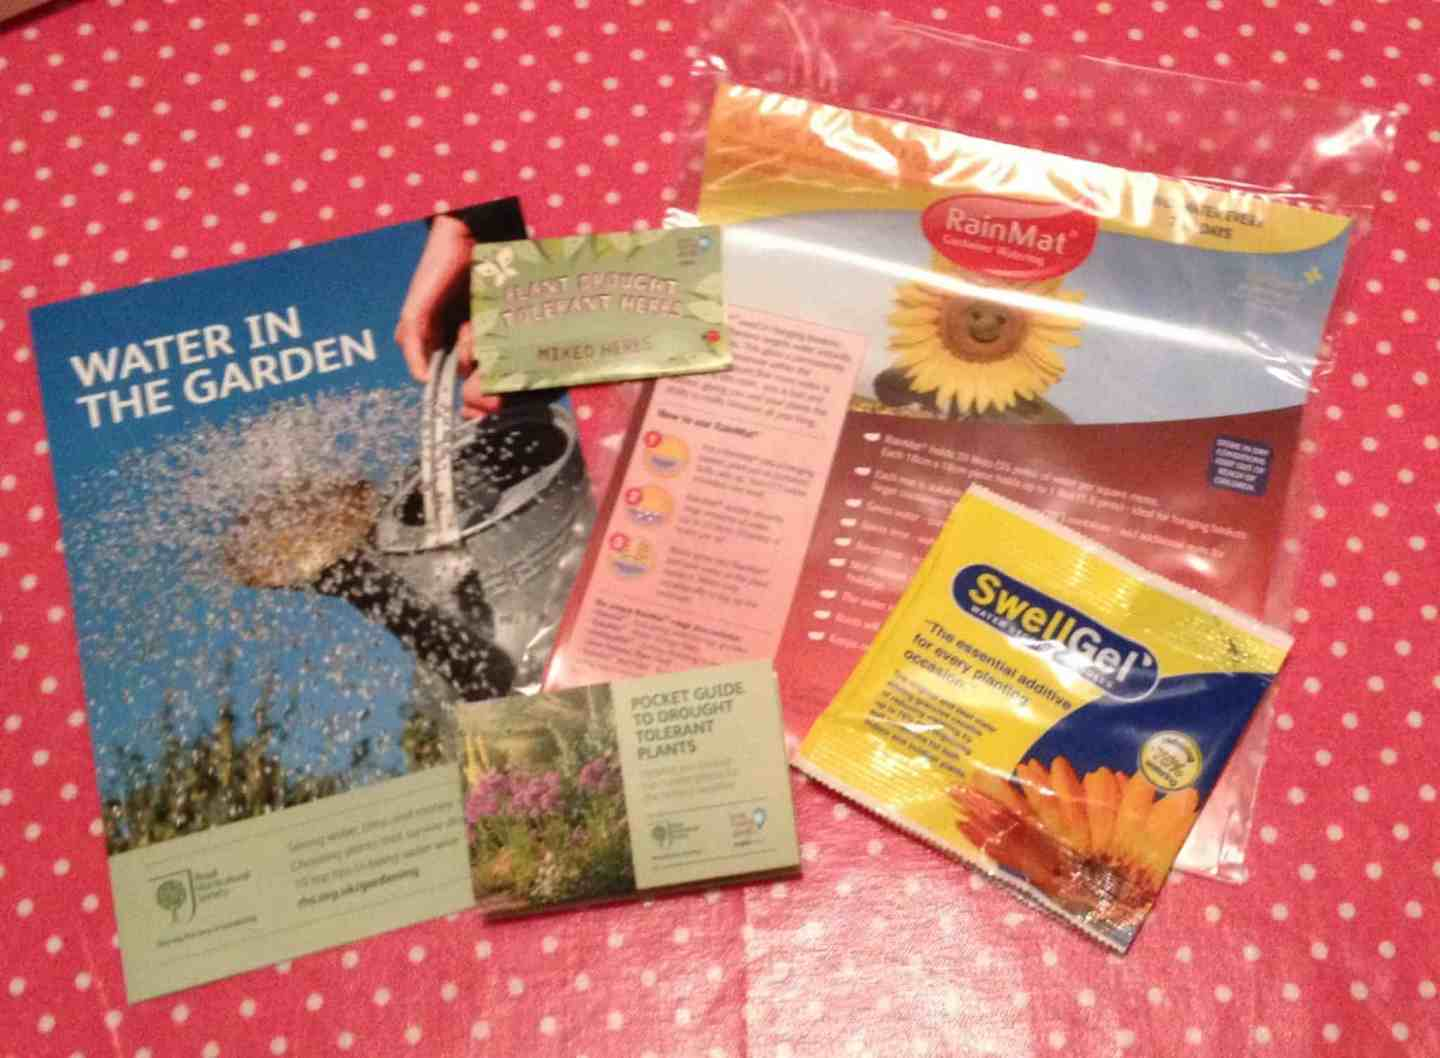 Save water with the Anglian Water water-saving kit for the garden